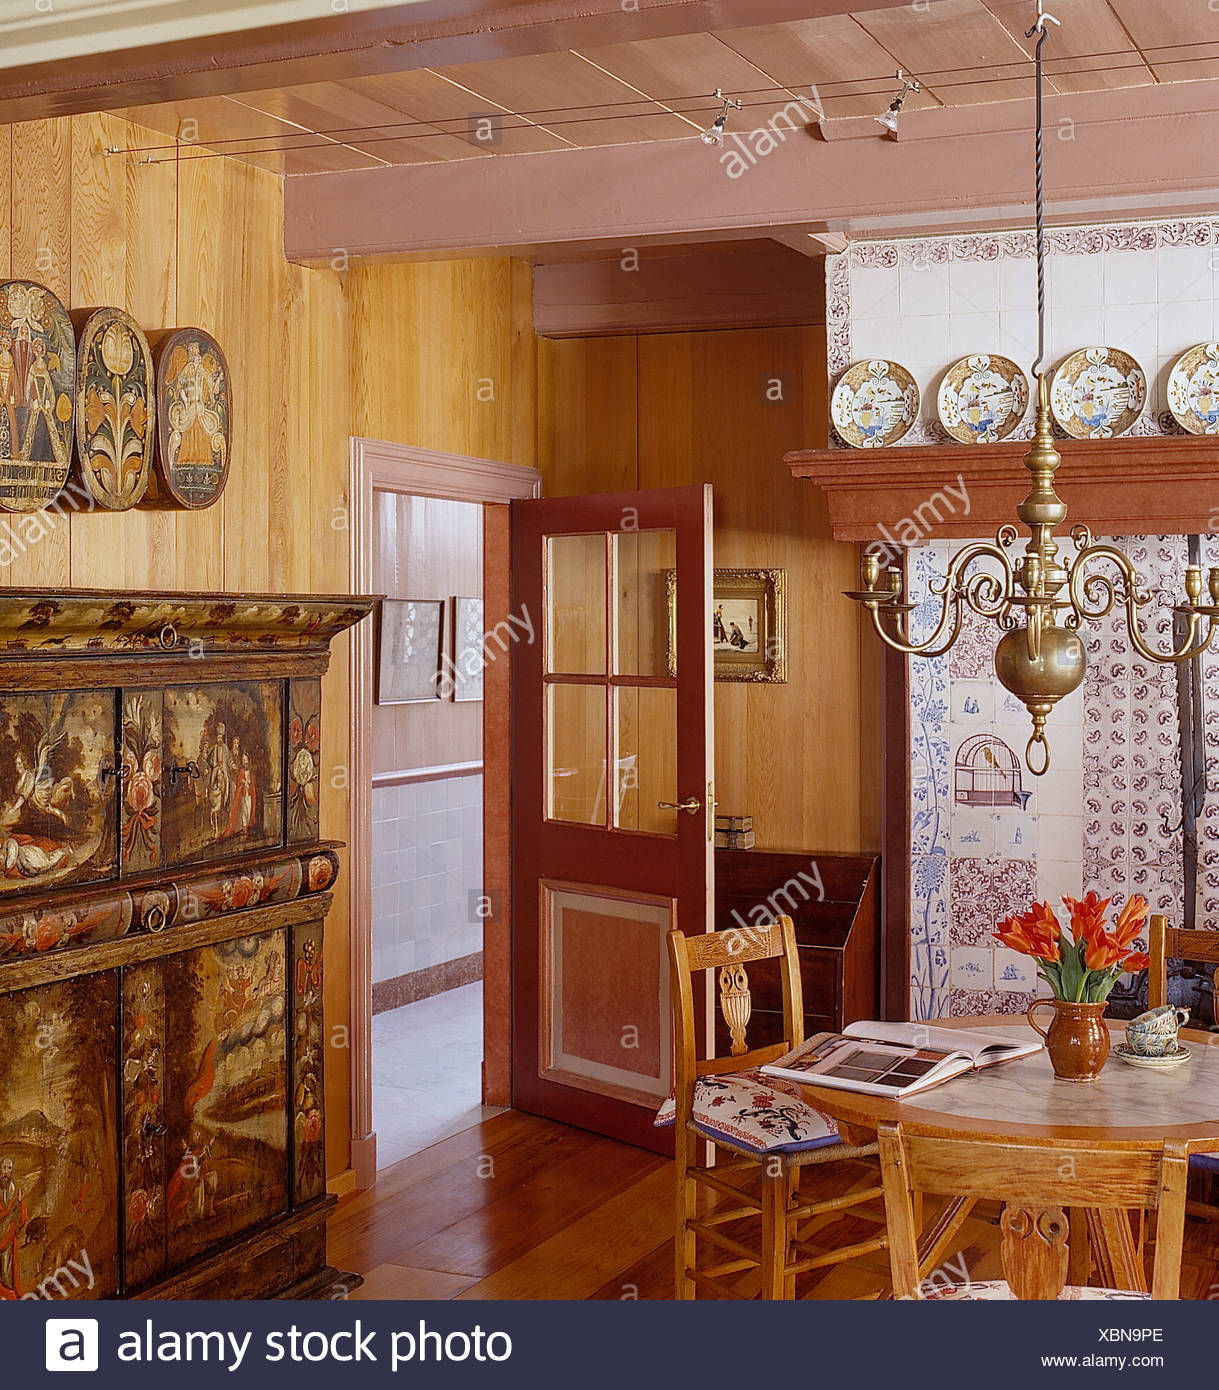 Brass Chandelier Above Circular Pine Table And Chairs In Country Dining Room  With Antique Painted Cupboard And Half Glazed Door